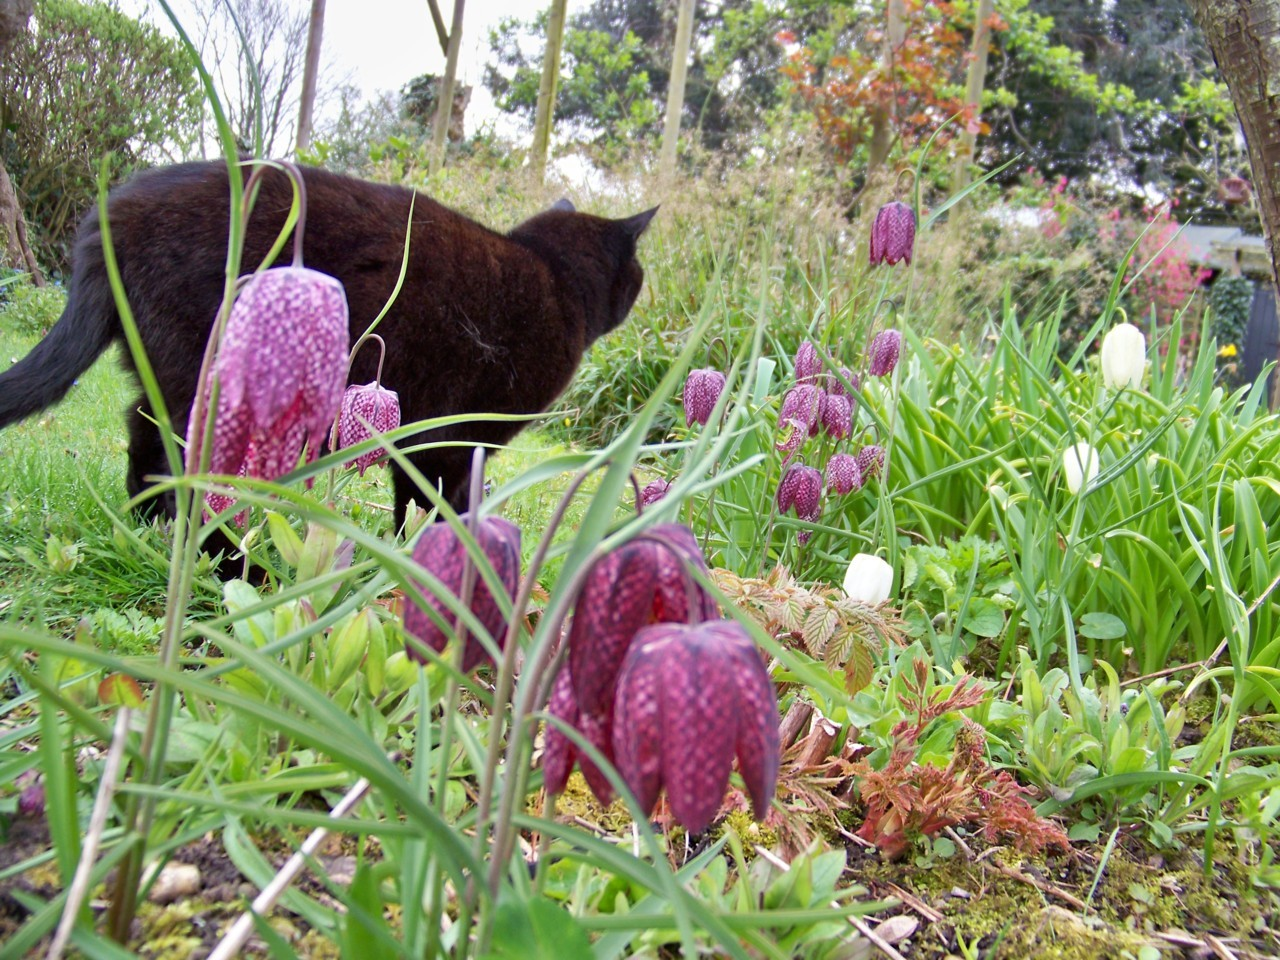 12th April 2012. Pablo among the fritillaries in the garden this morning.